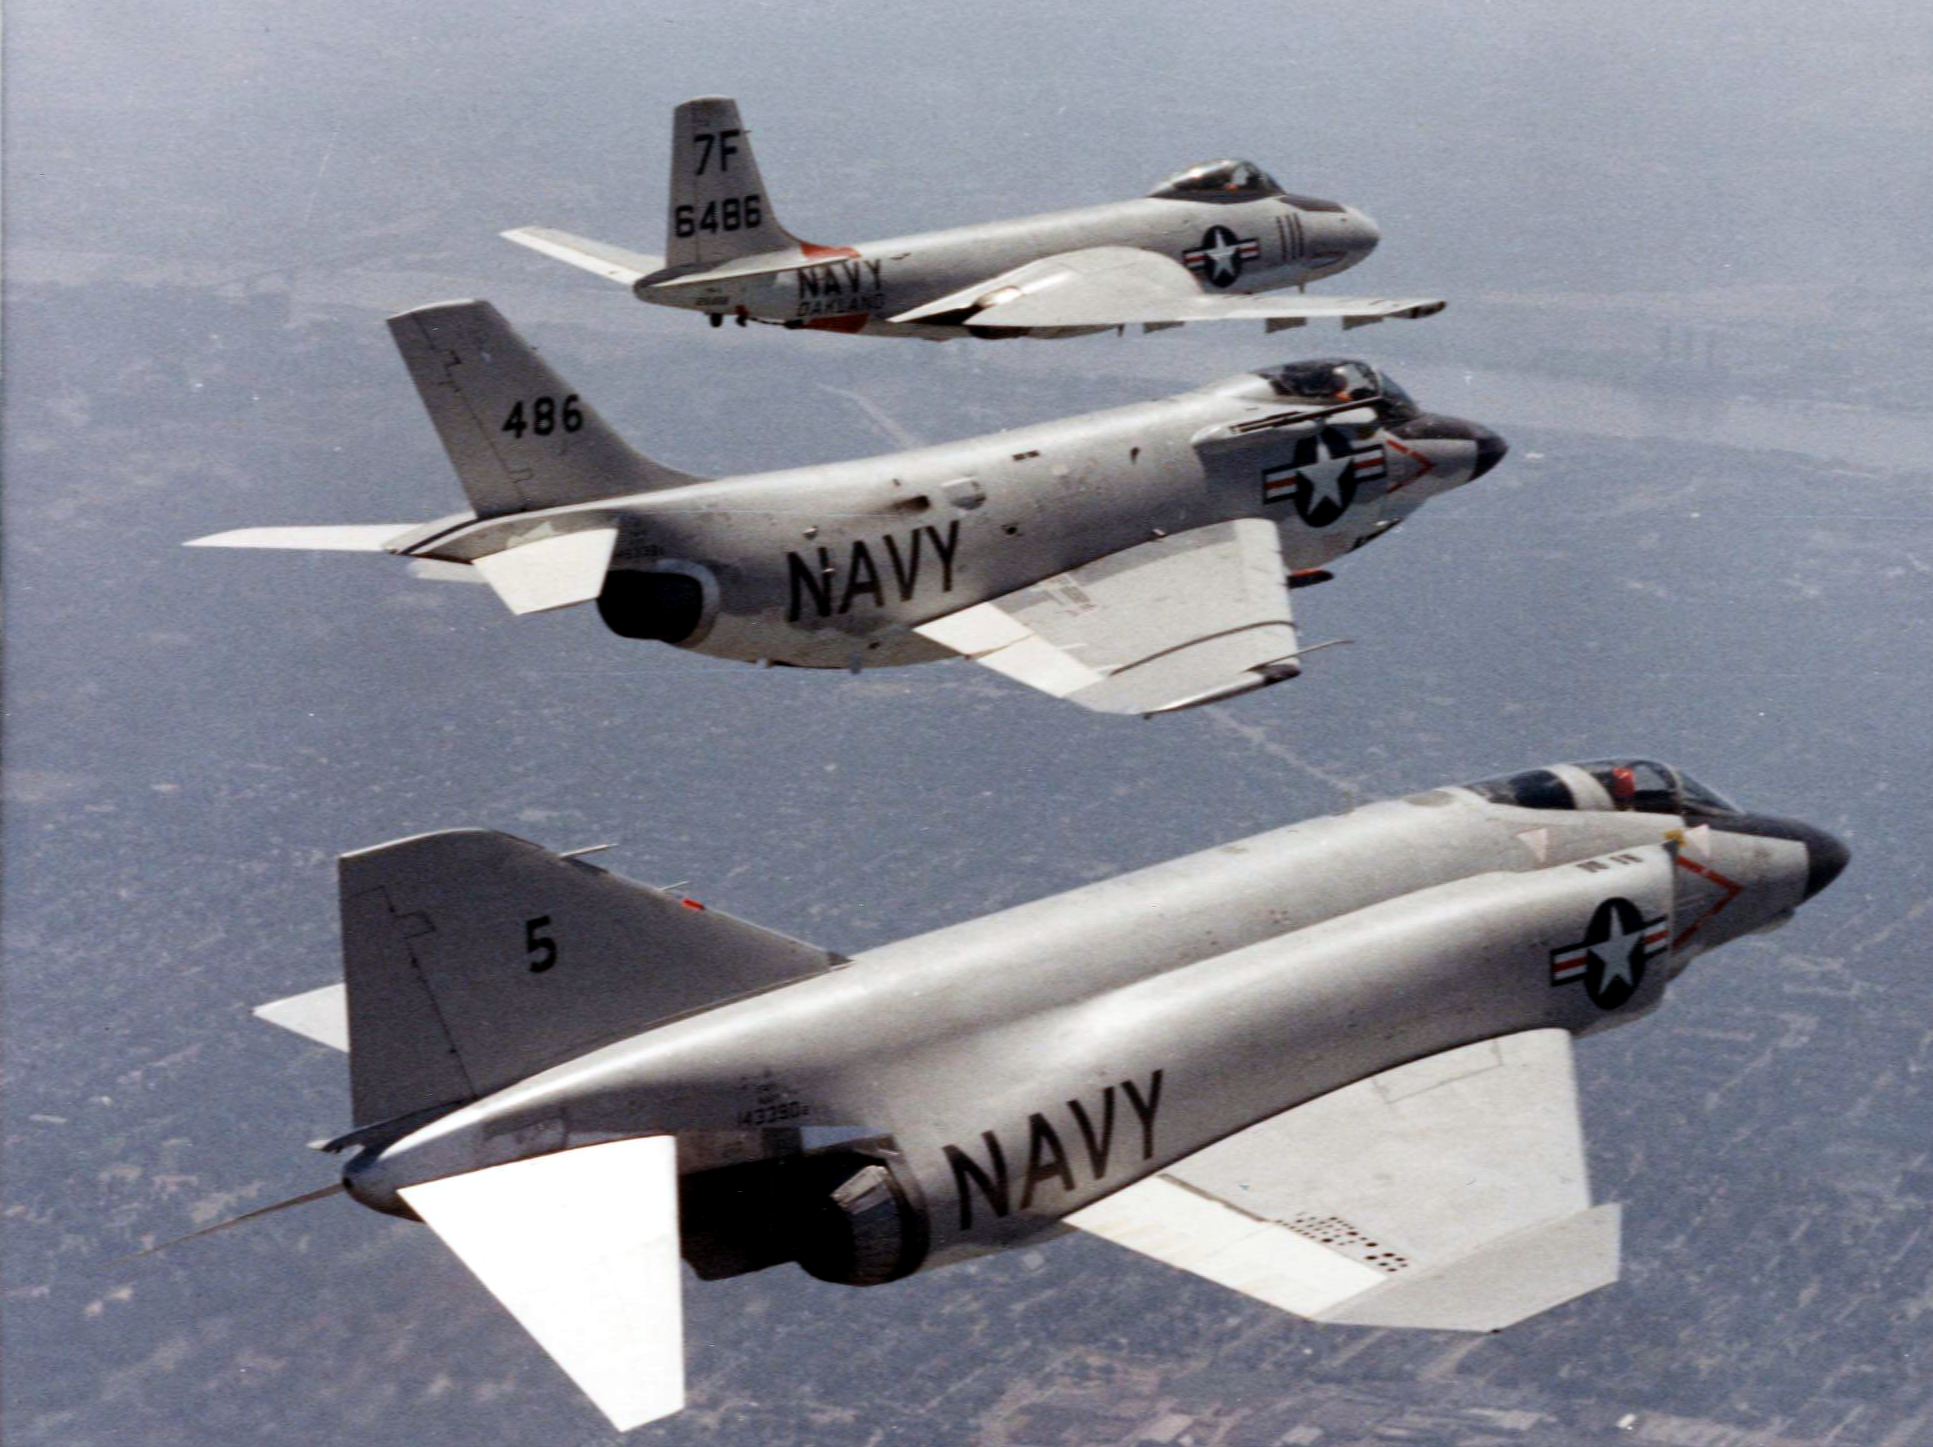 F2H_F3H_and_F4H_McDonnell_fighters_in_fl